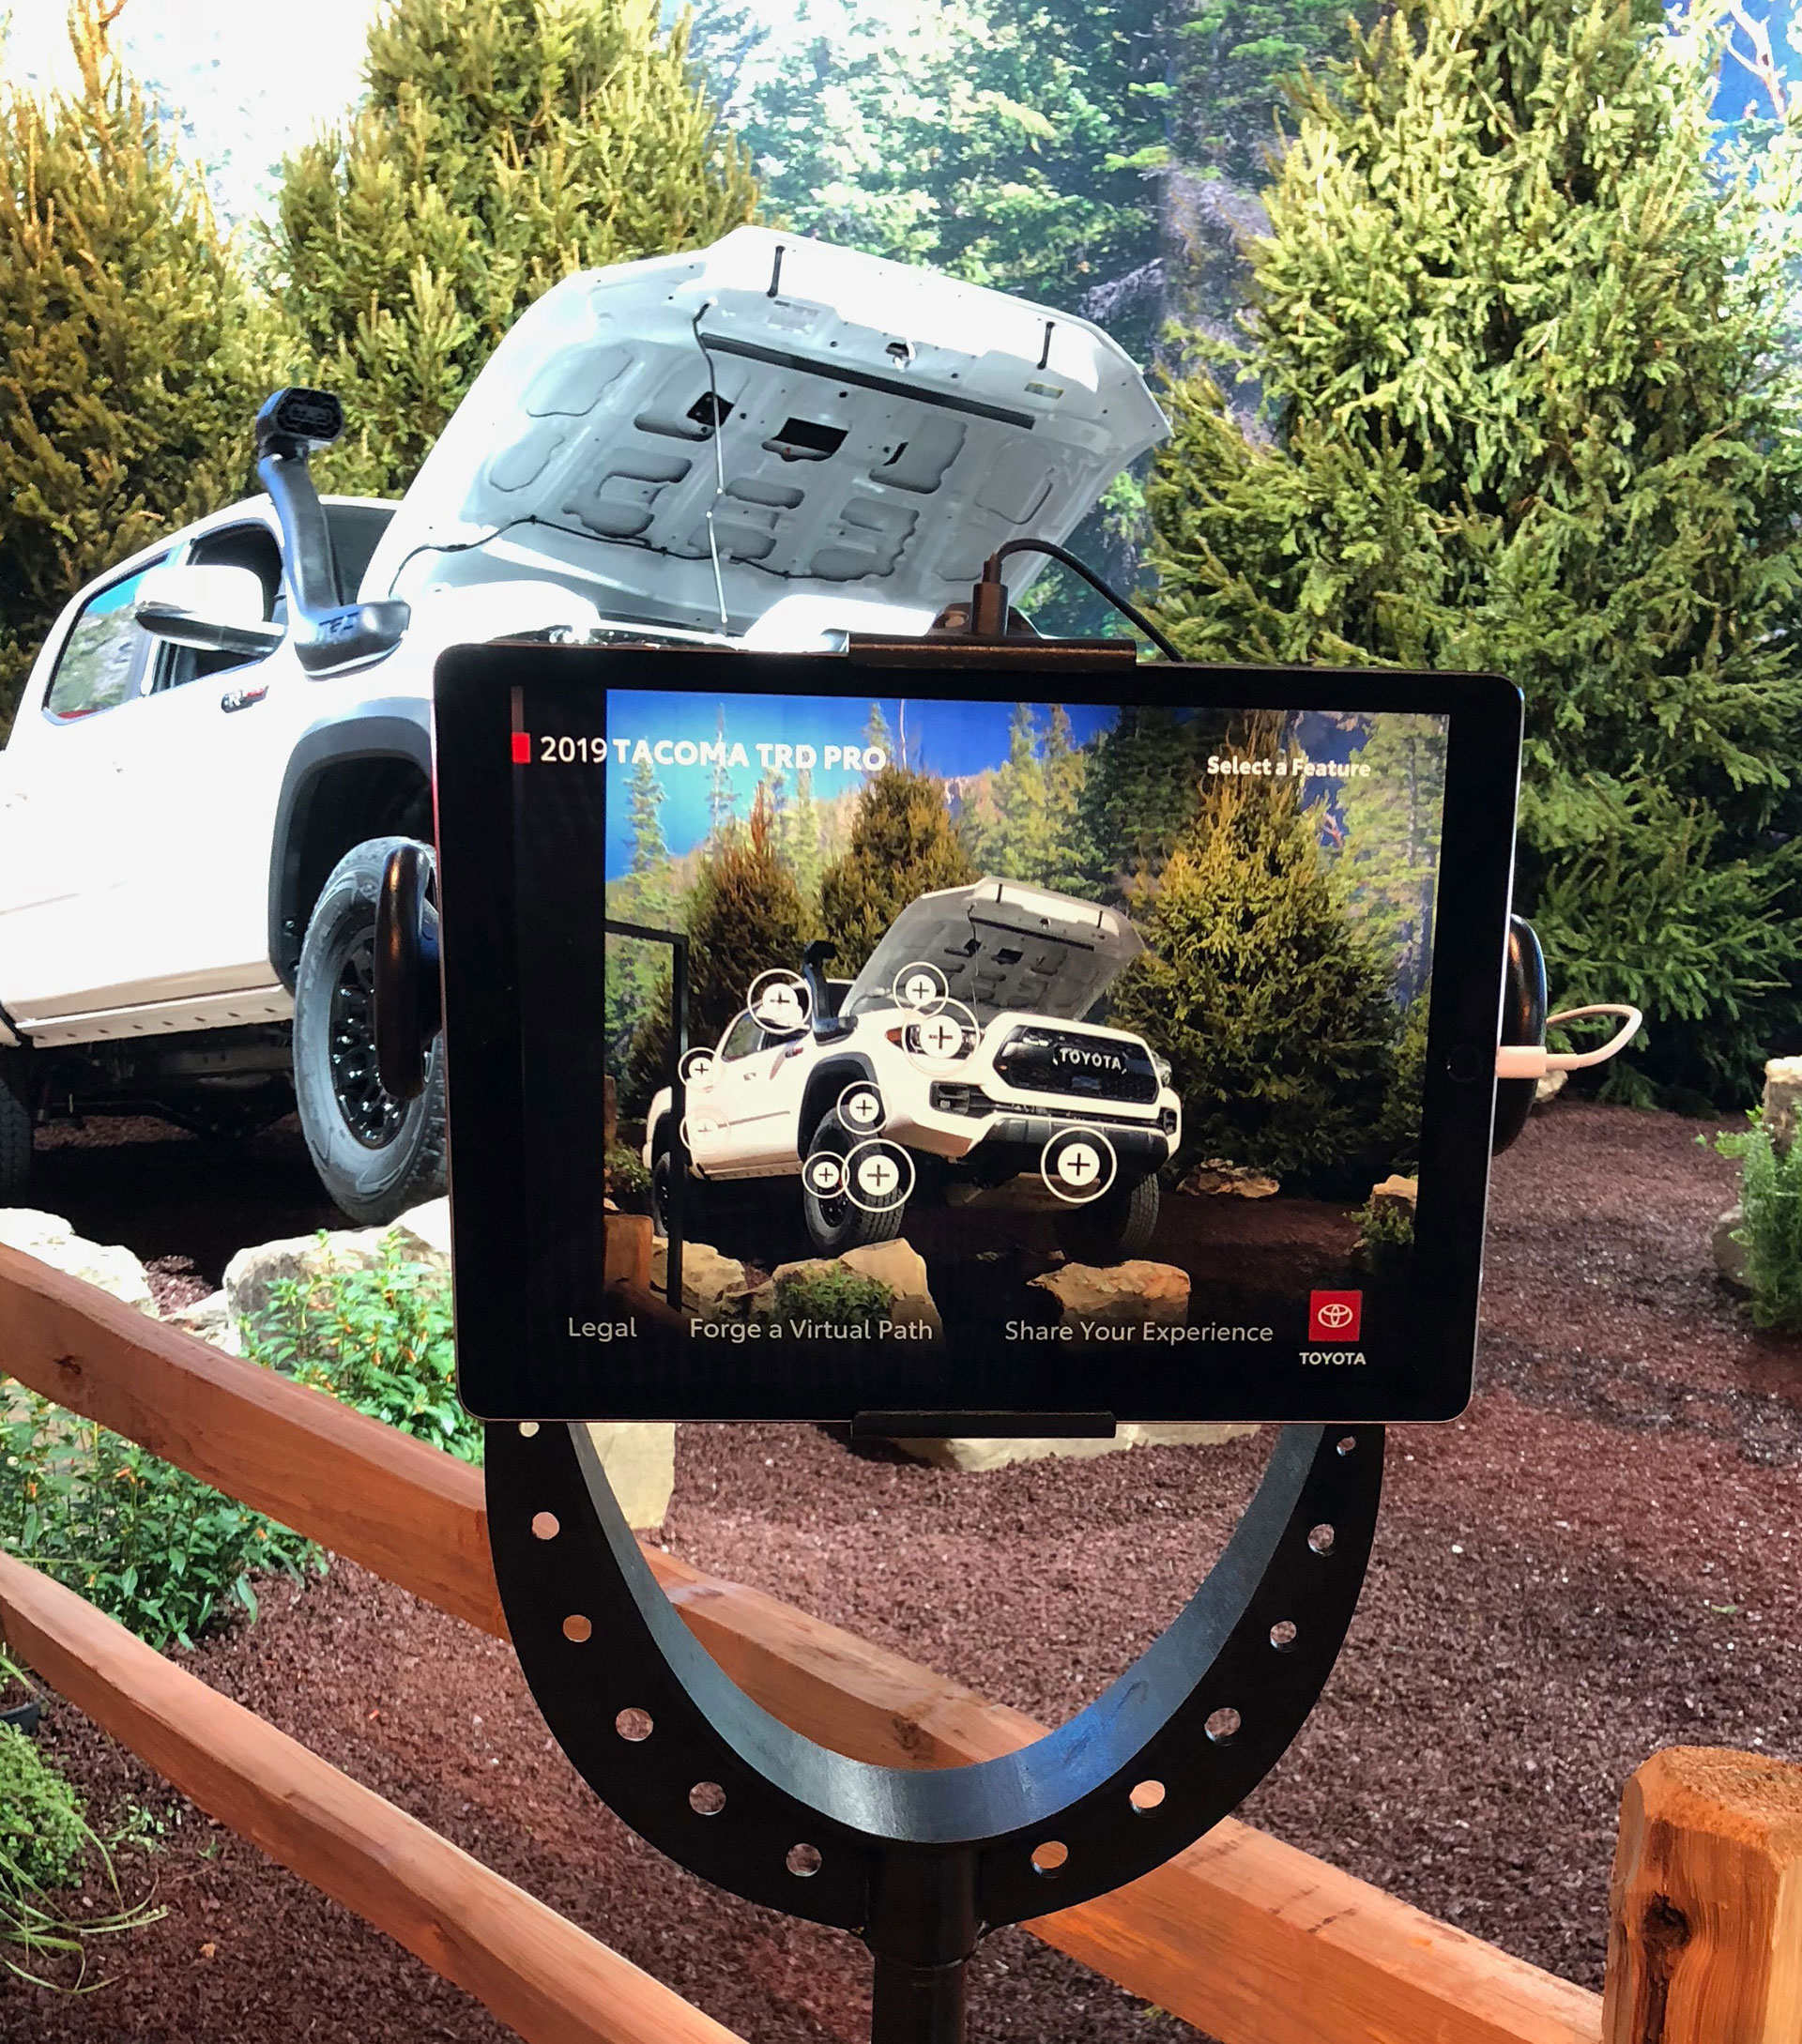 Toyota Trd Pro Augmented Reality Experience Debuts At Auto Shows Kes Diagram Ar